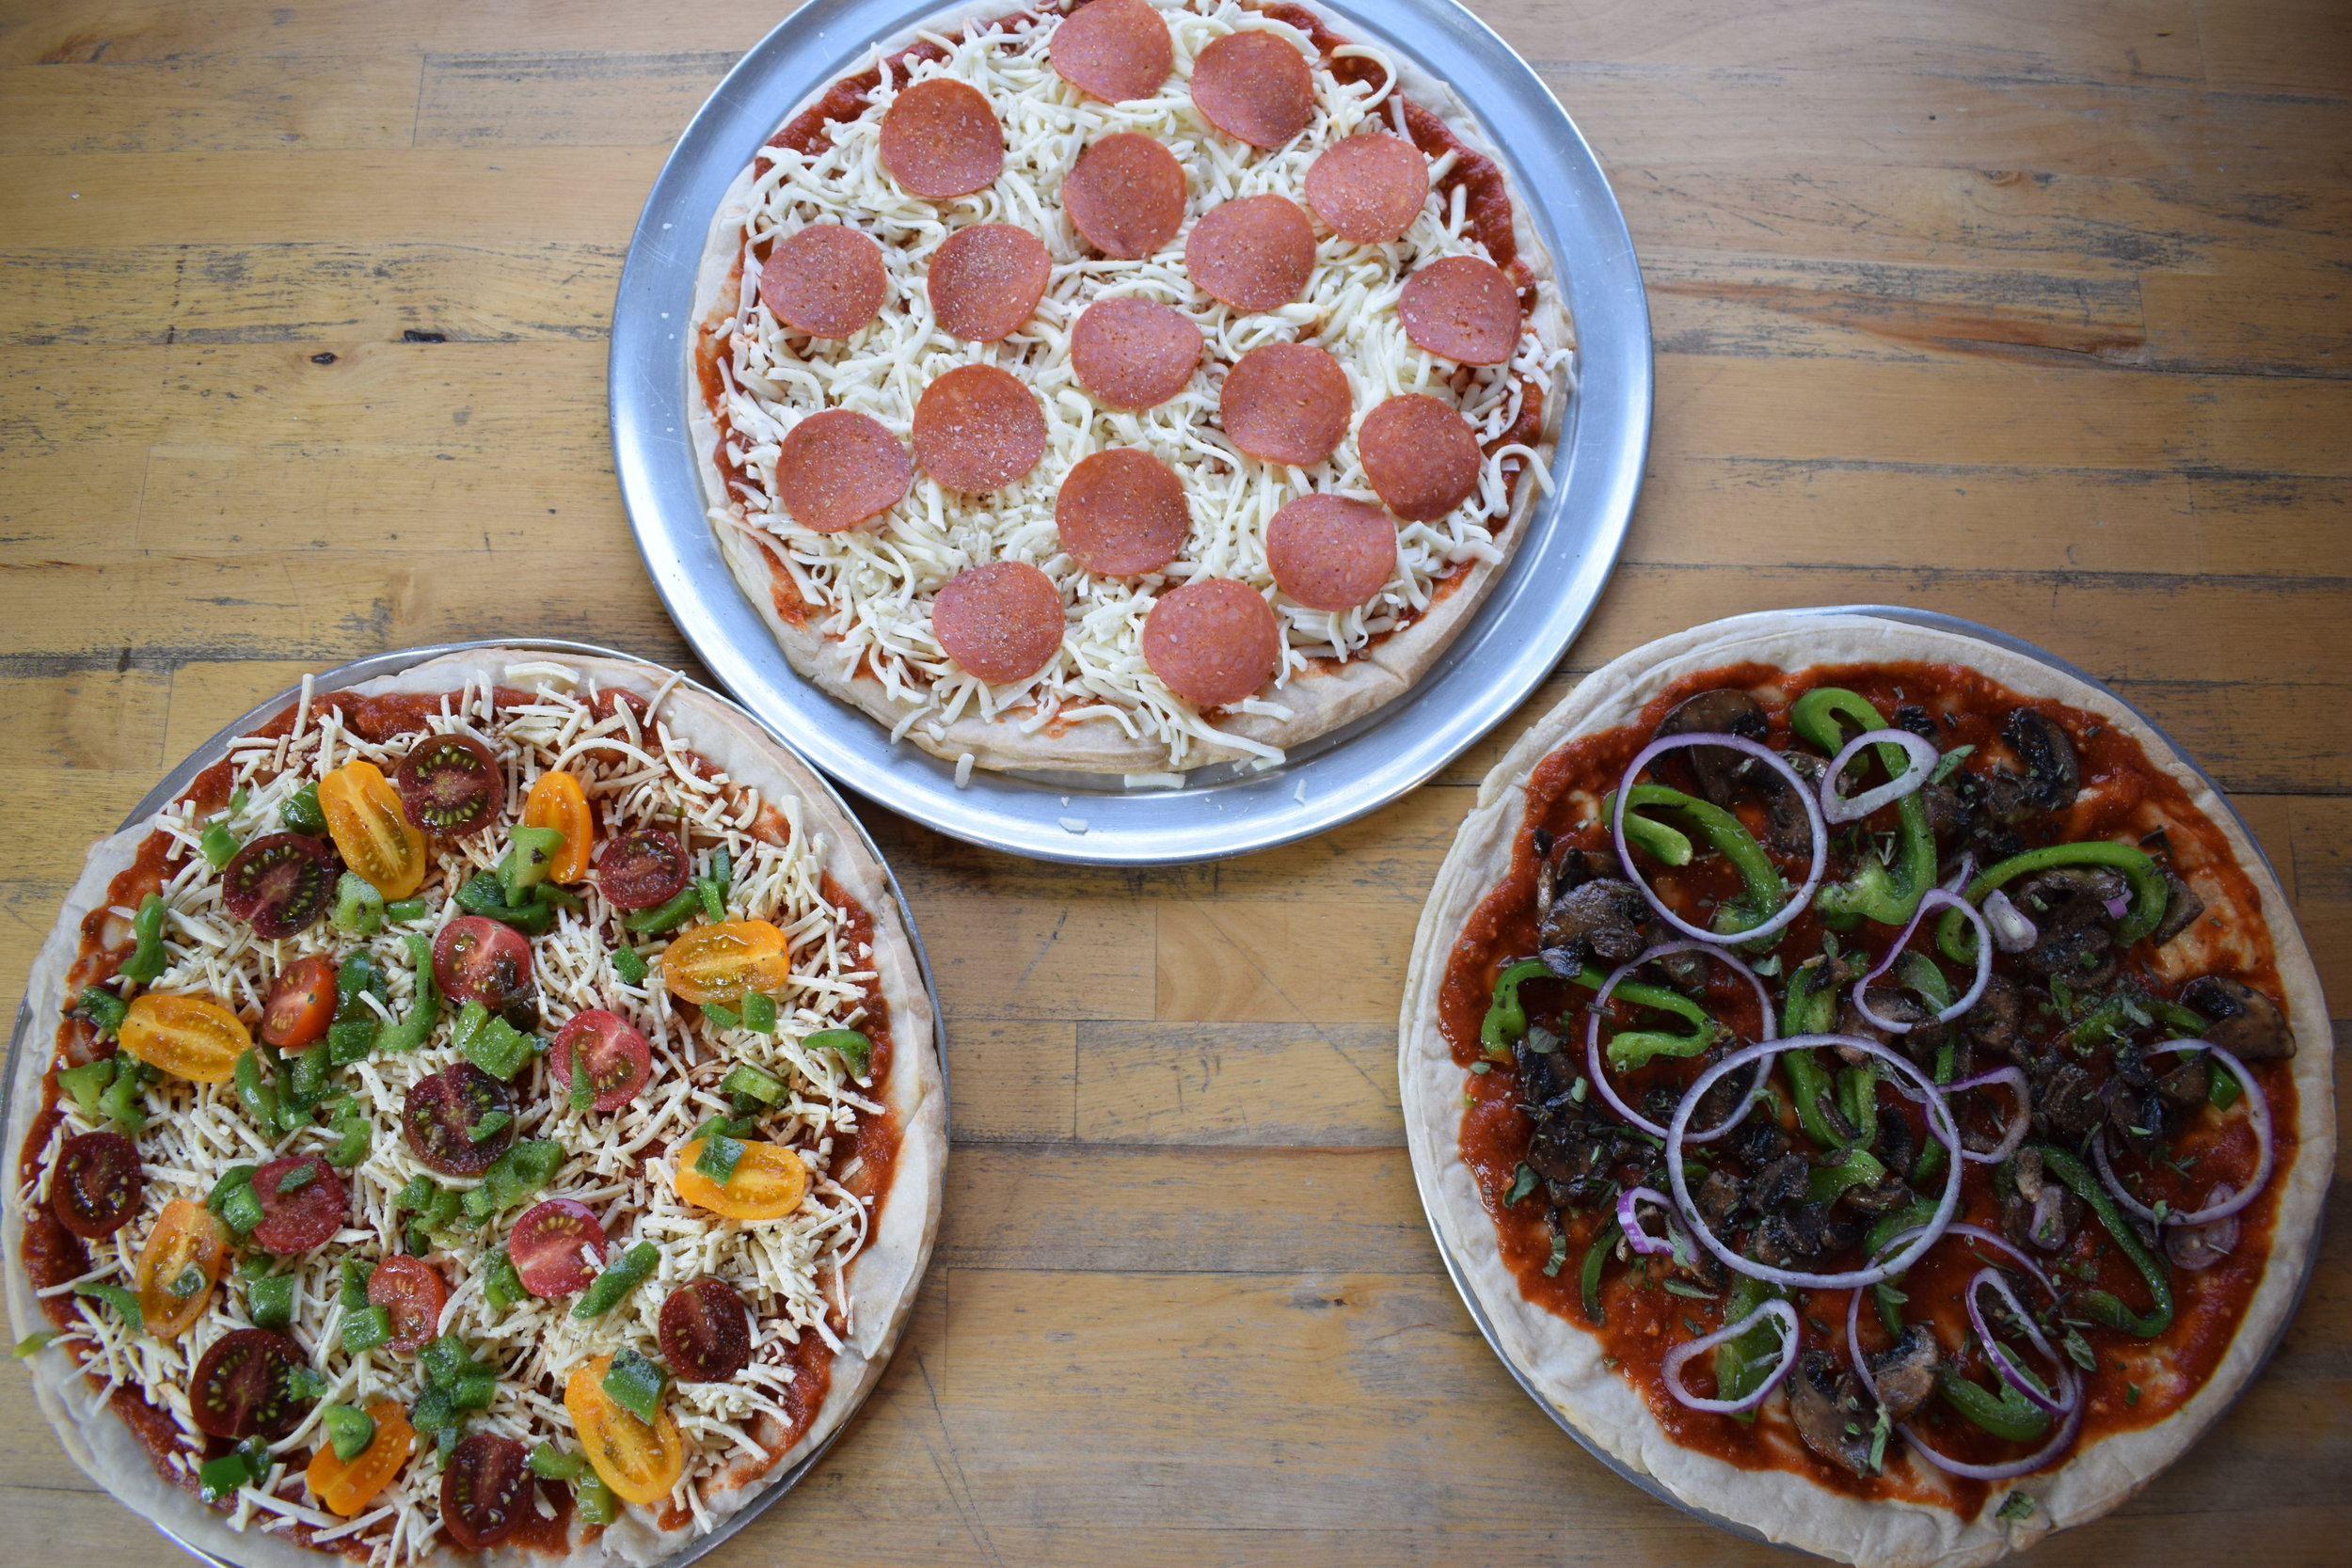 We made a pizza for everyone! A pepperoni with regular cheese, a veggie pizza with vegan cheese, and a pepper, mushroom, onion pizza with fresh herbs!